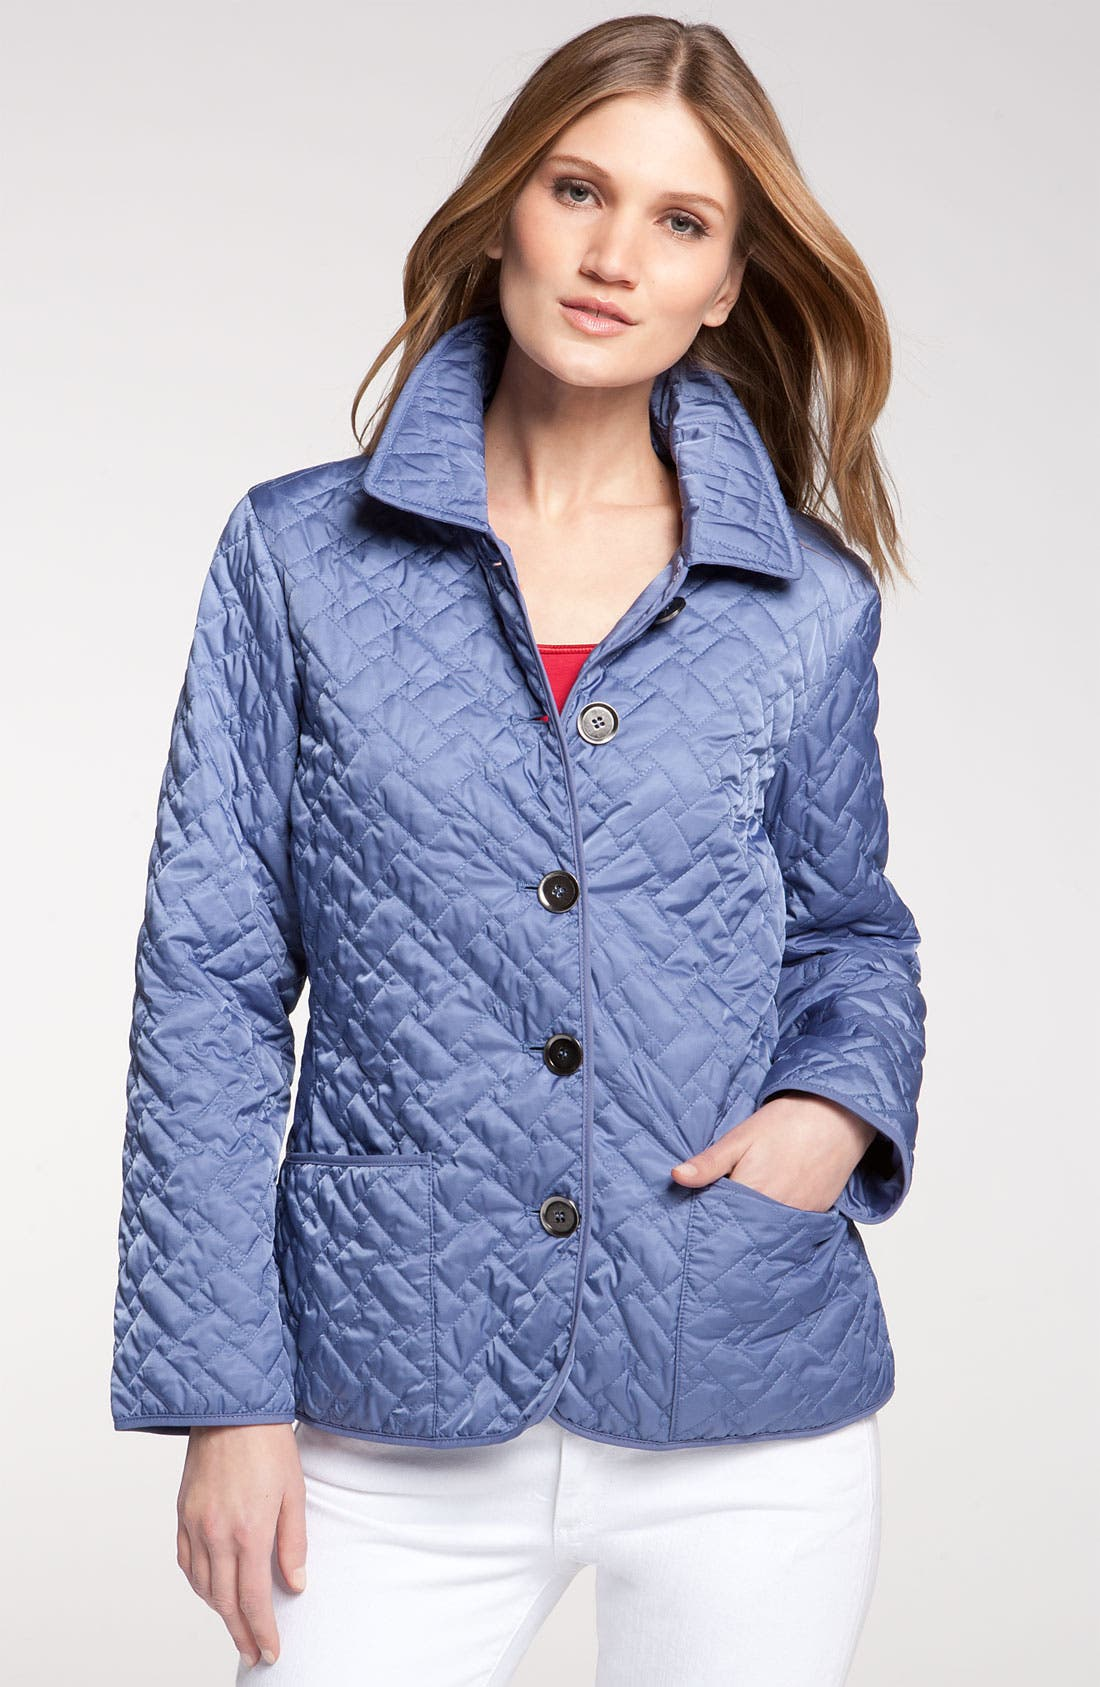 Alternate Image 1 Selected - Cole Haan Short Quilted Jacket (Petite)